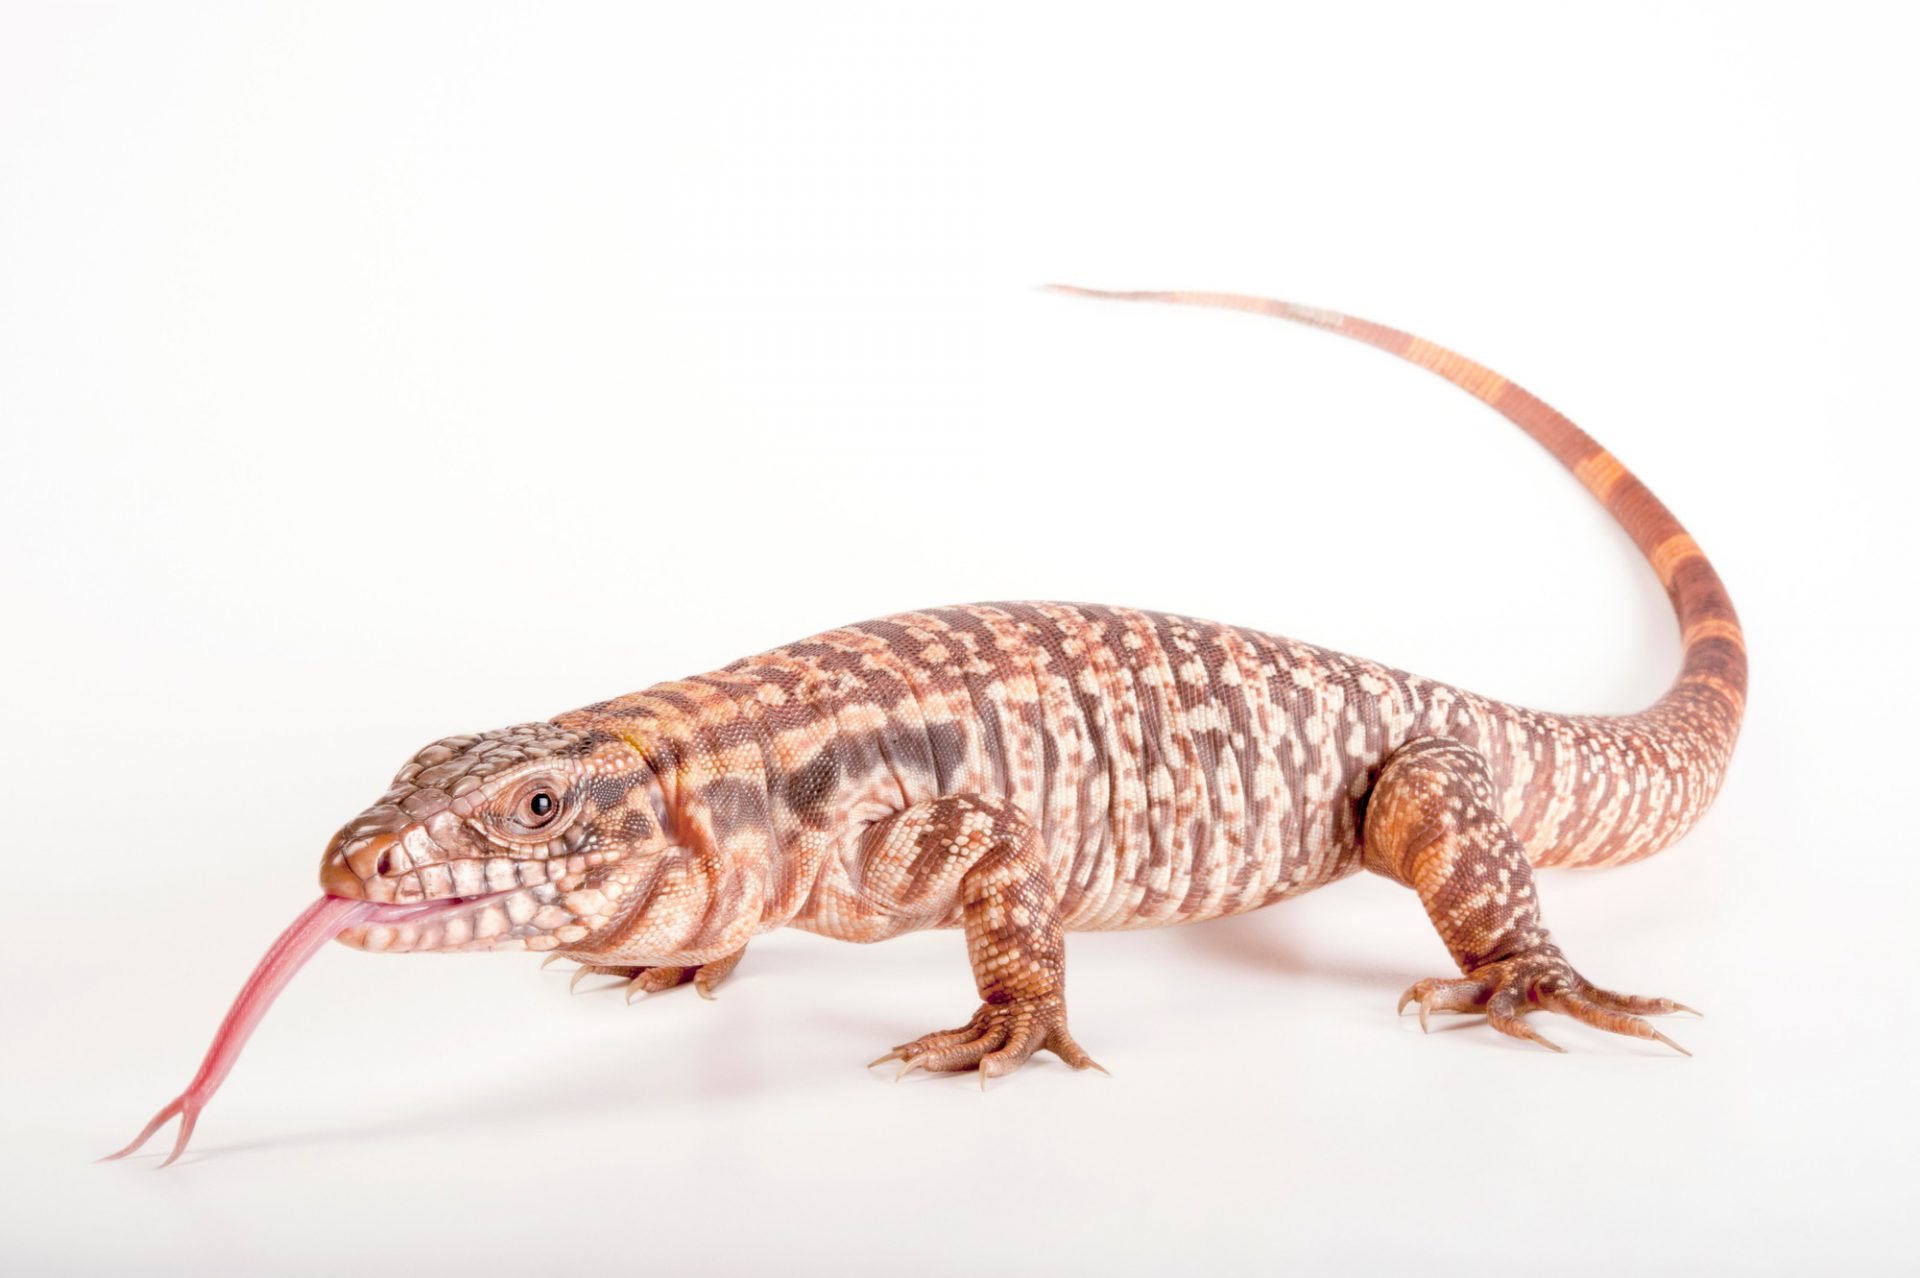 A red tegu lizard (Tupinambis rufescens) at the Gladys Porter Zoo in Brownsville, Texas.